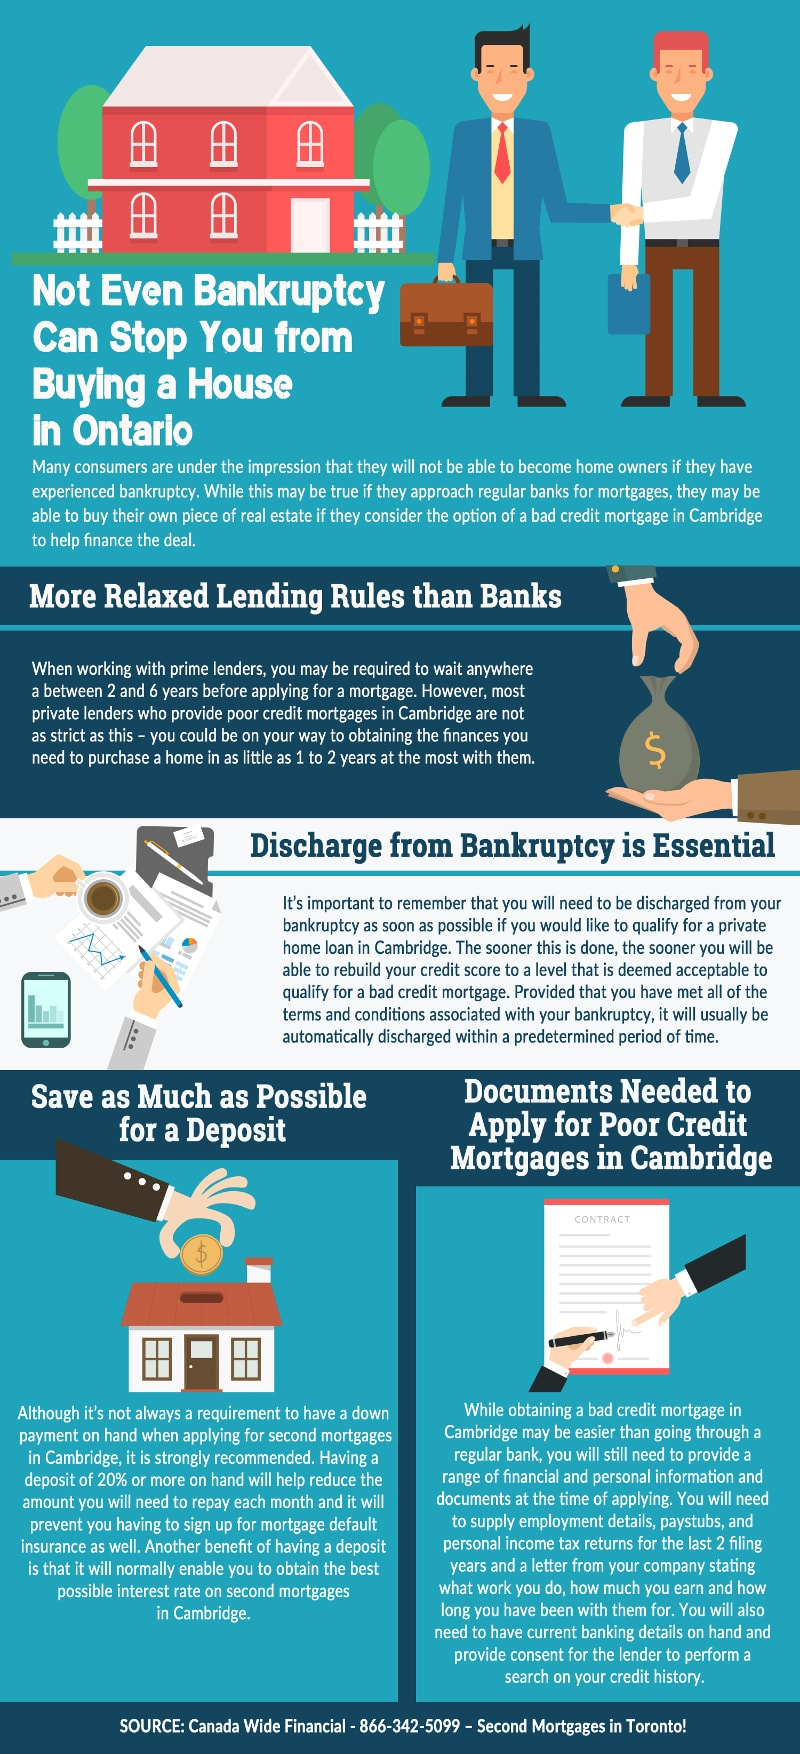 Not Even Bankruptcy Can Stop You from Buying a House in Ontario - Infographic